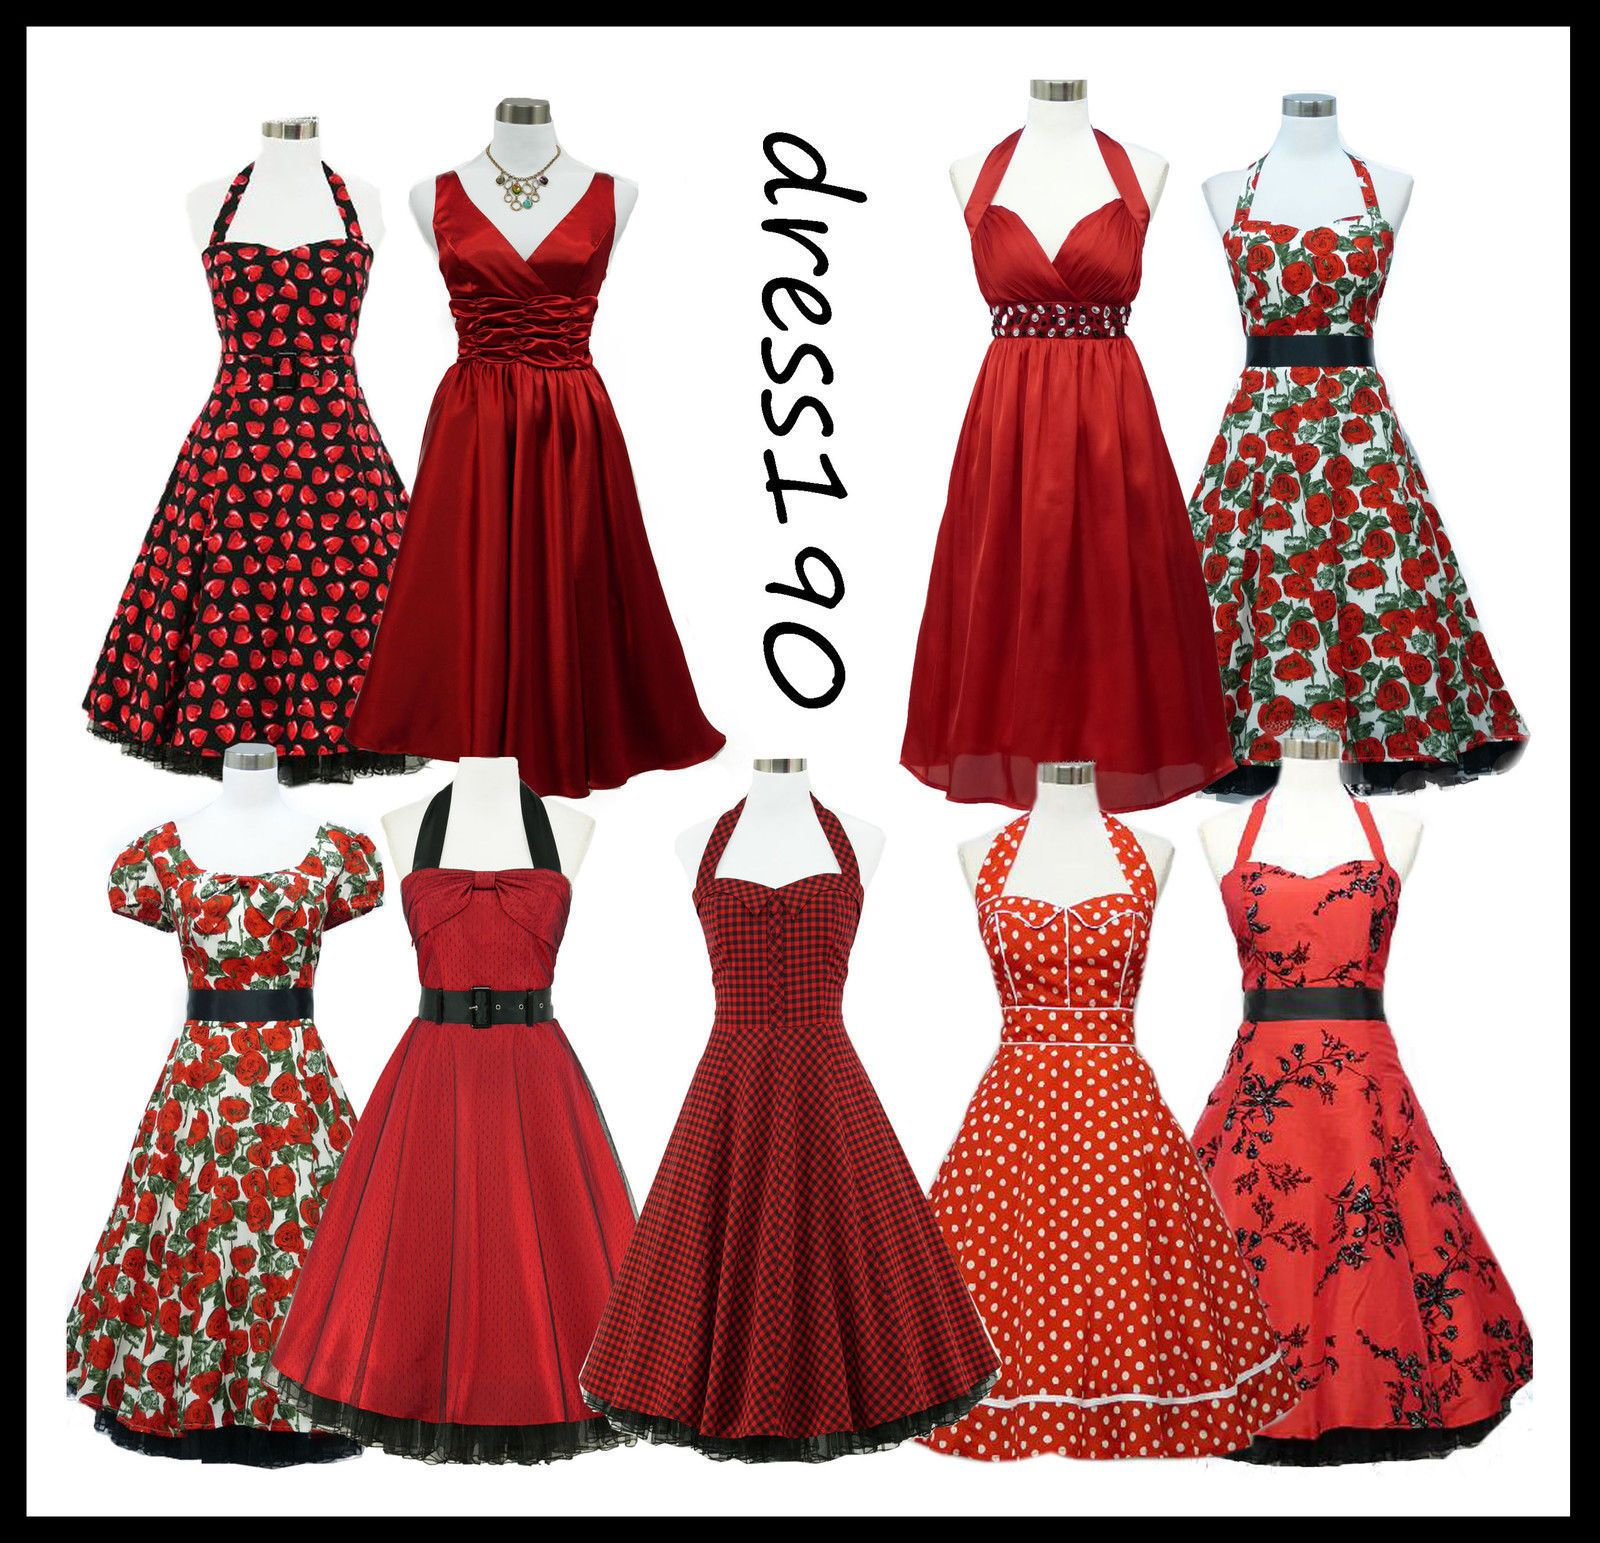 Dress190 Red 50S Rockabilly Pinup Party Prom Ball Gown Cocktail ...